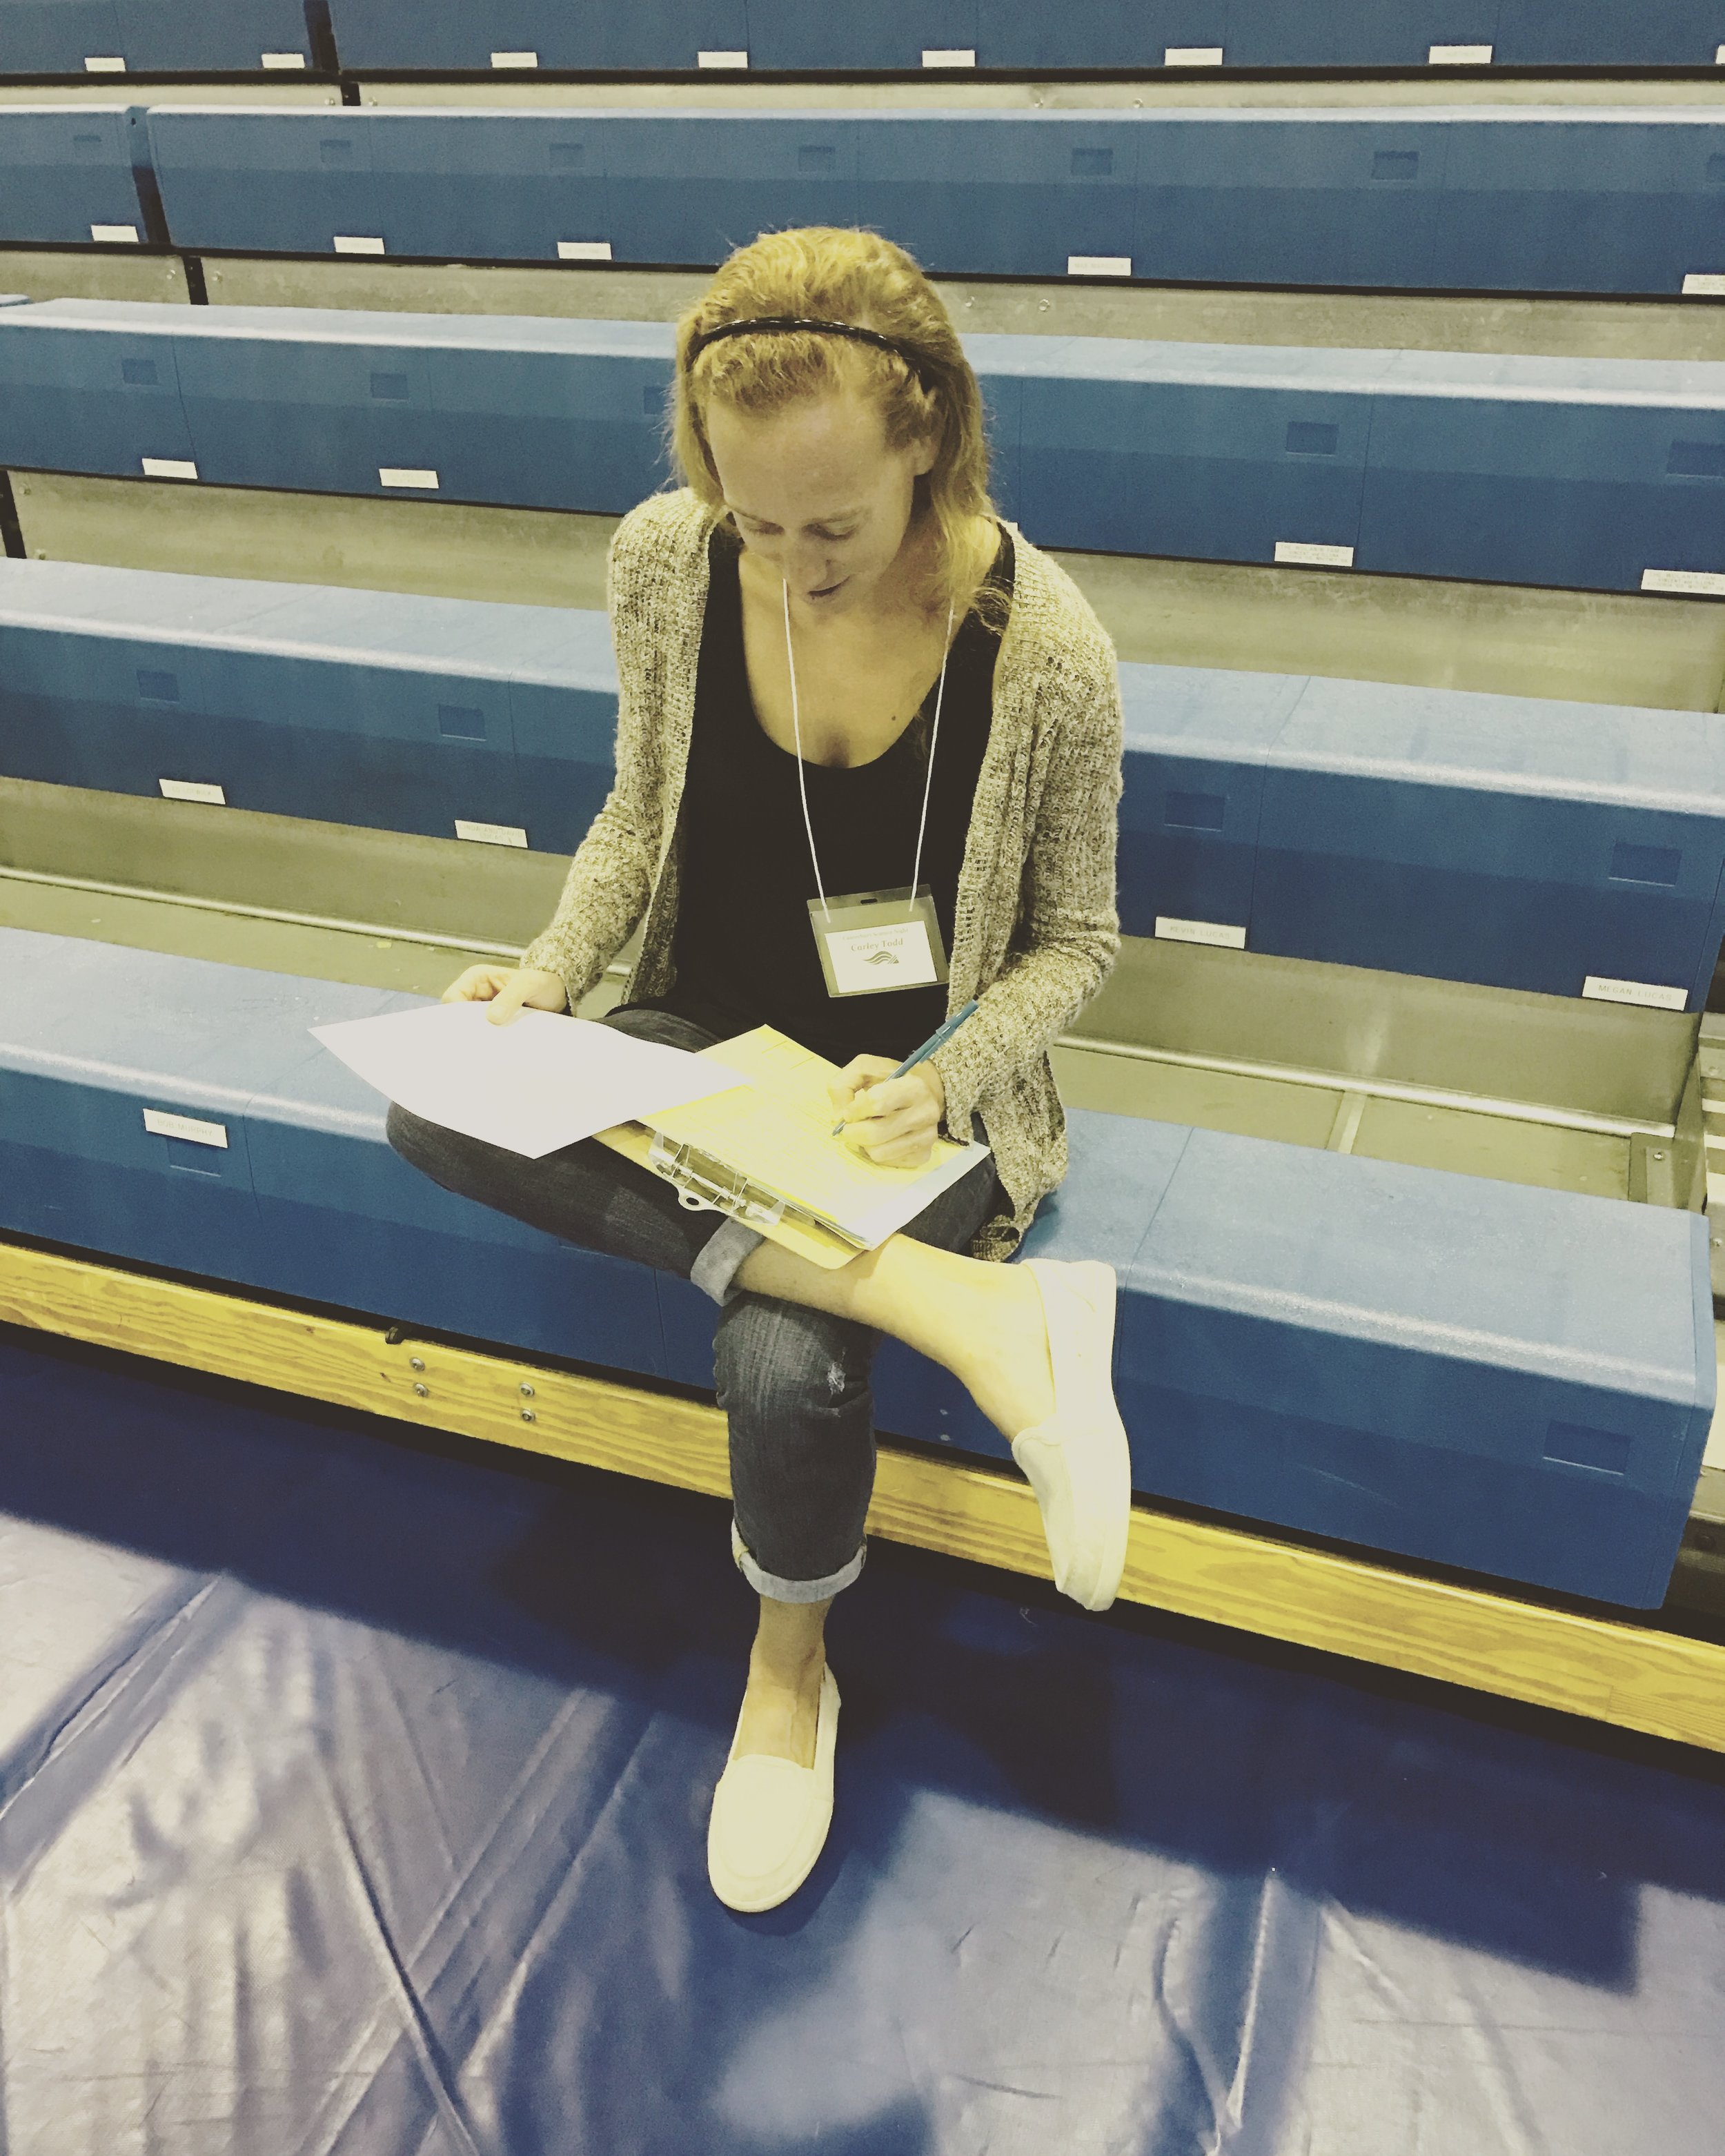 Carley Todd takes a break to make notes on her score sheet.